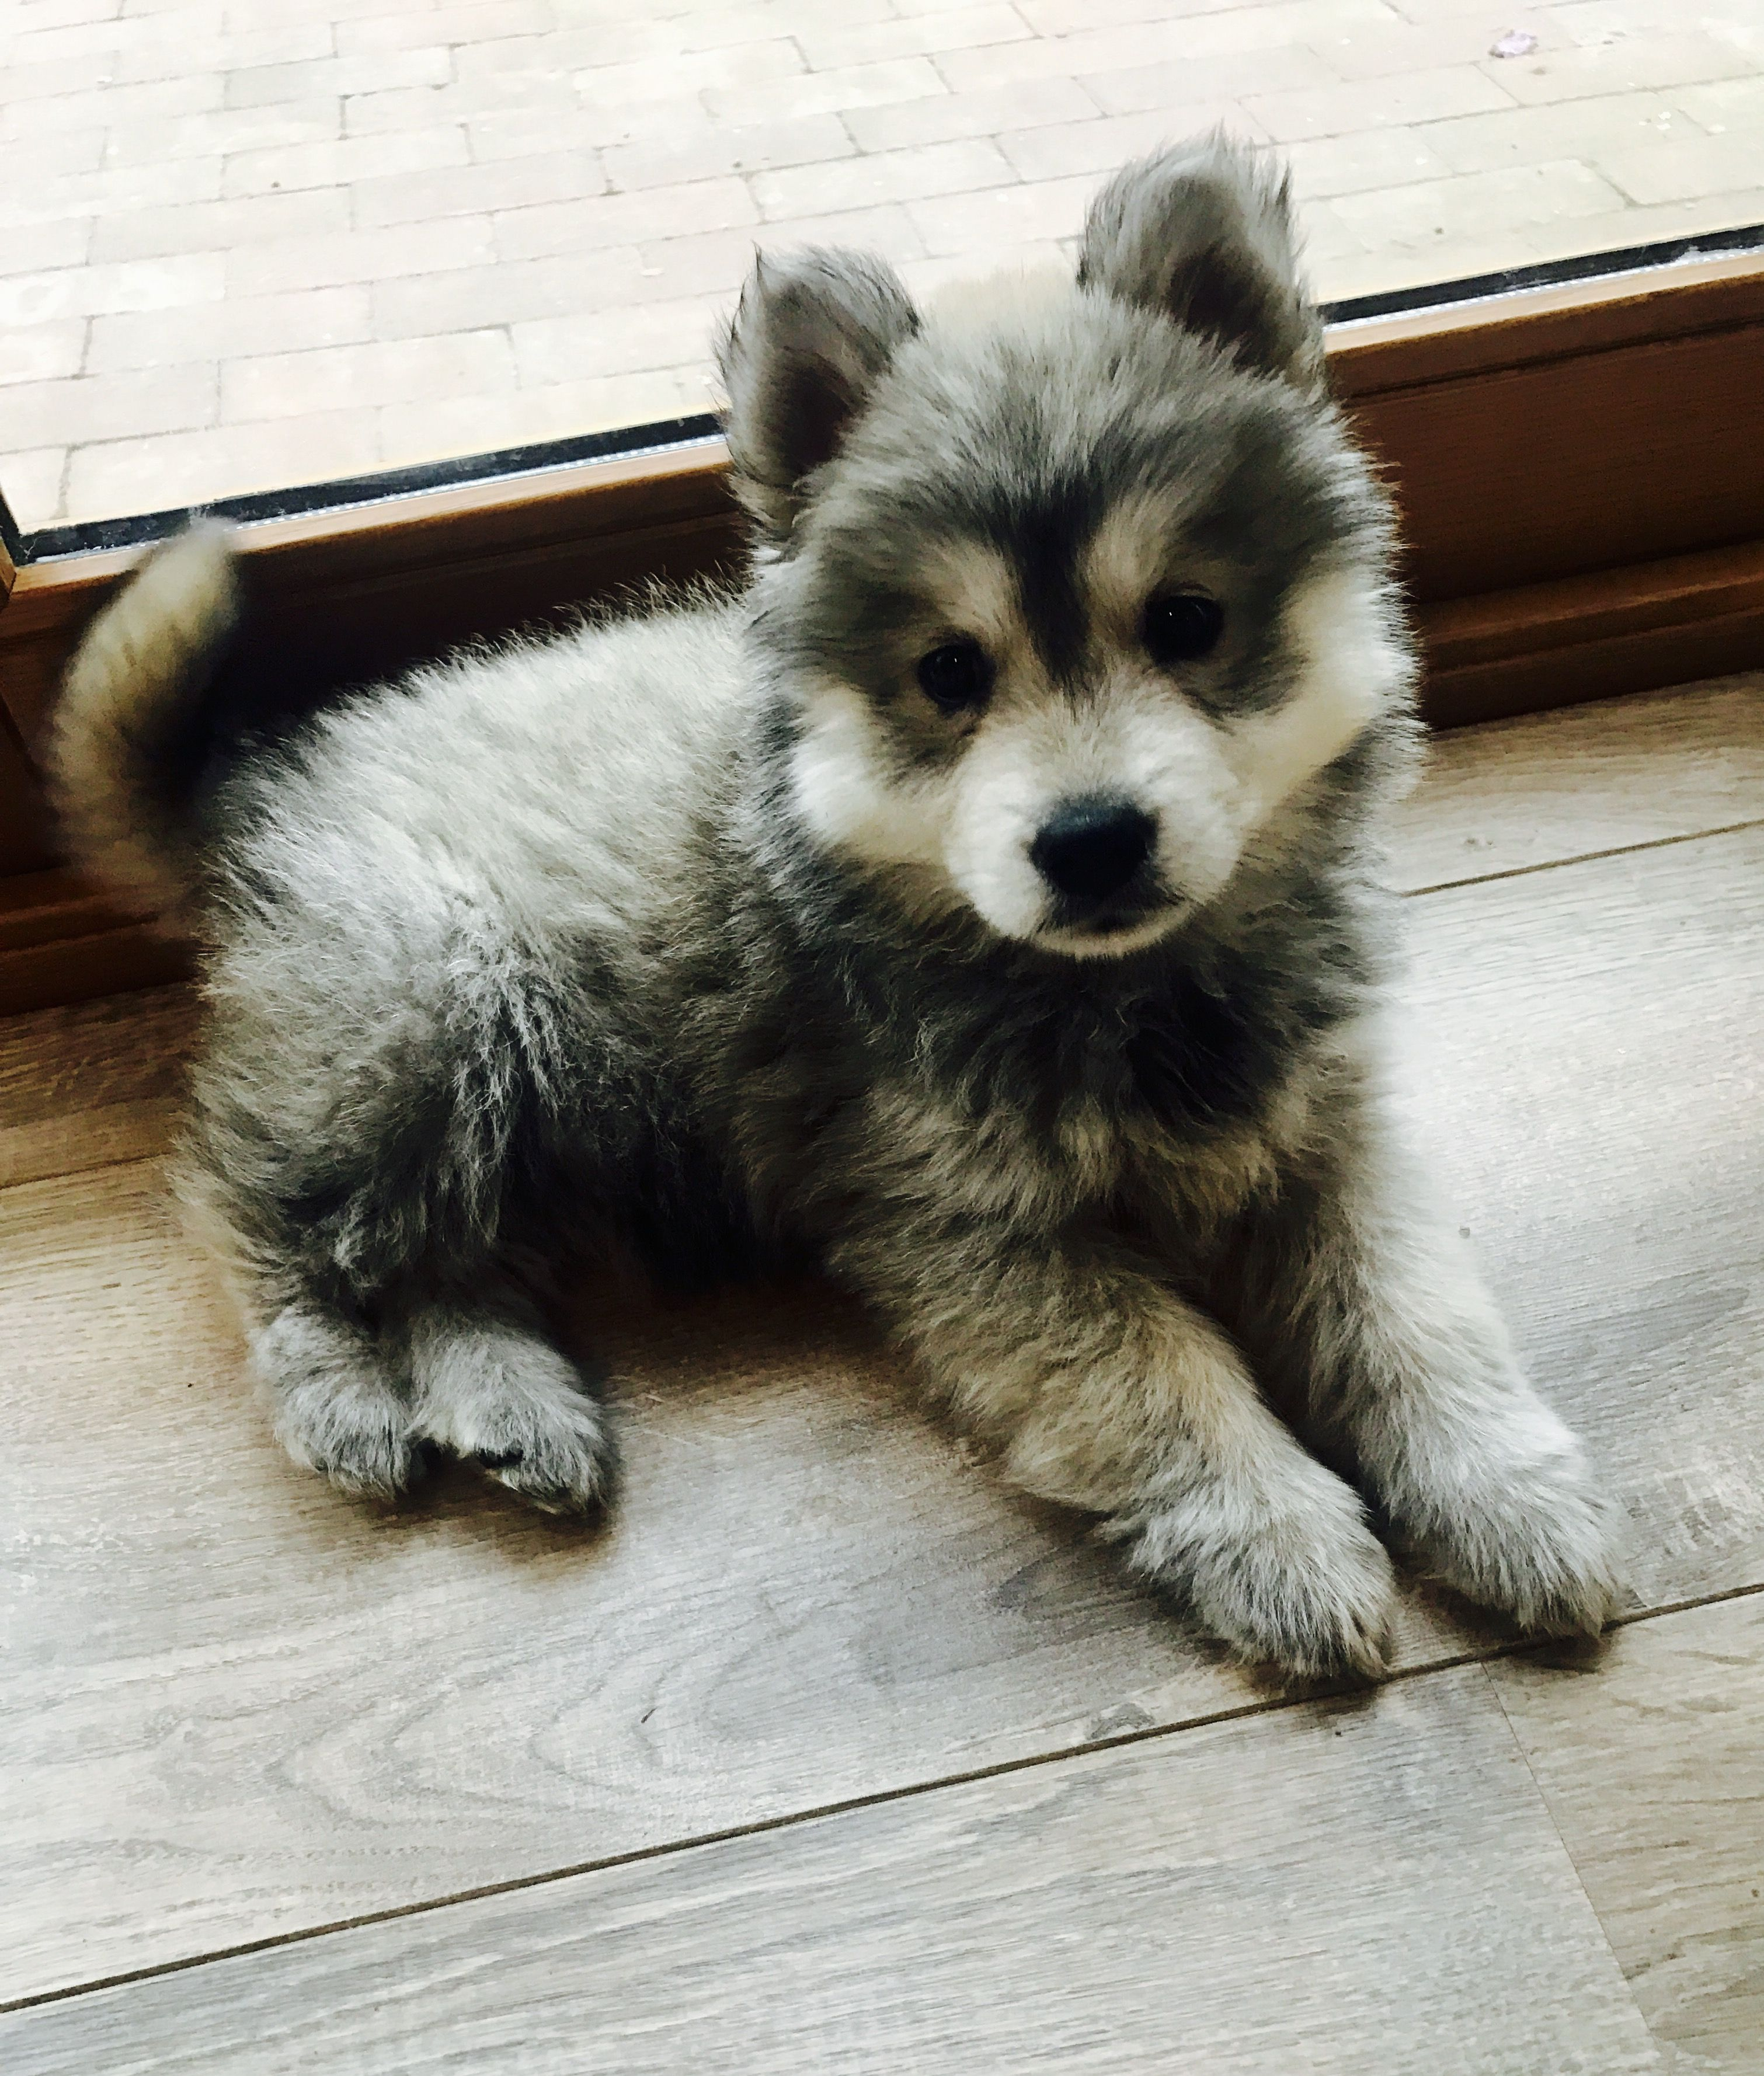 Chusky Chowsky Puppy Hybrid Dogs Mixed Breed Dogs Cute Dogs